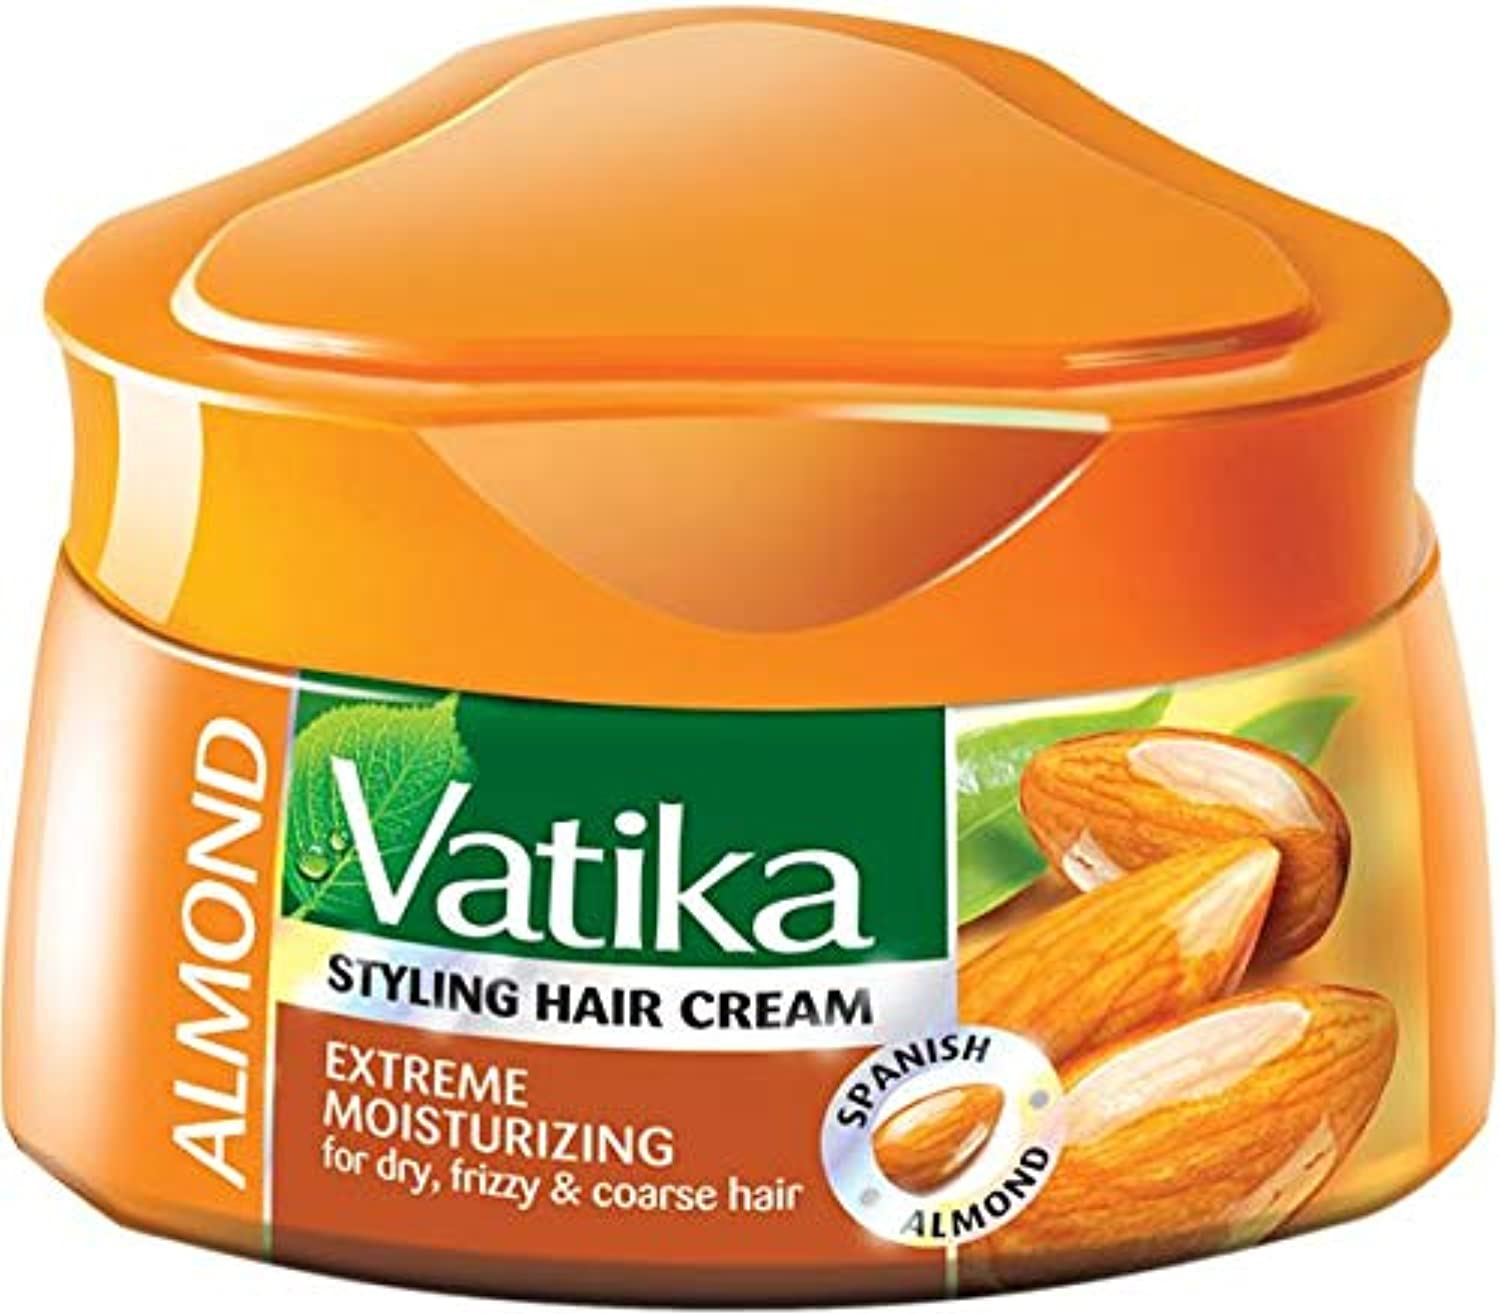 不良品積極的に受粉するDabur Vatika Natural Styling Hair Cream 140 ml (Extreme Moisturizing (Almond))